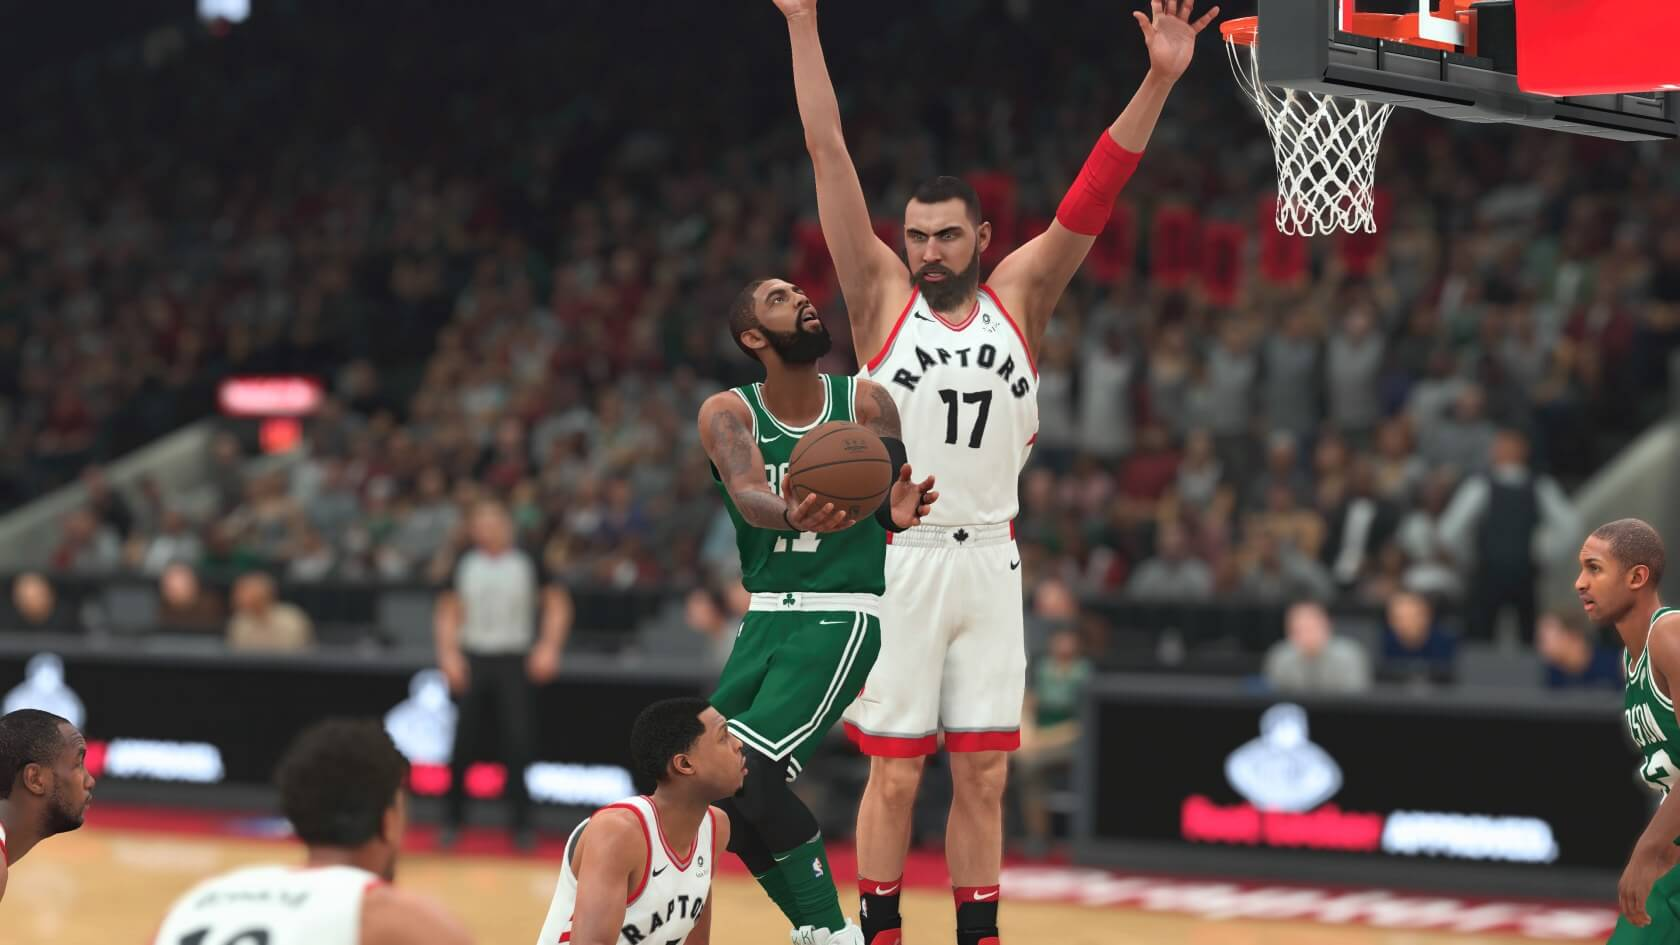 NBA 2K19 producer says microtransactions are an unfortunate reality